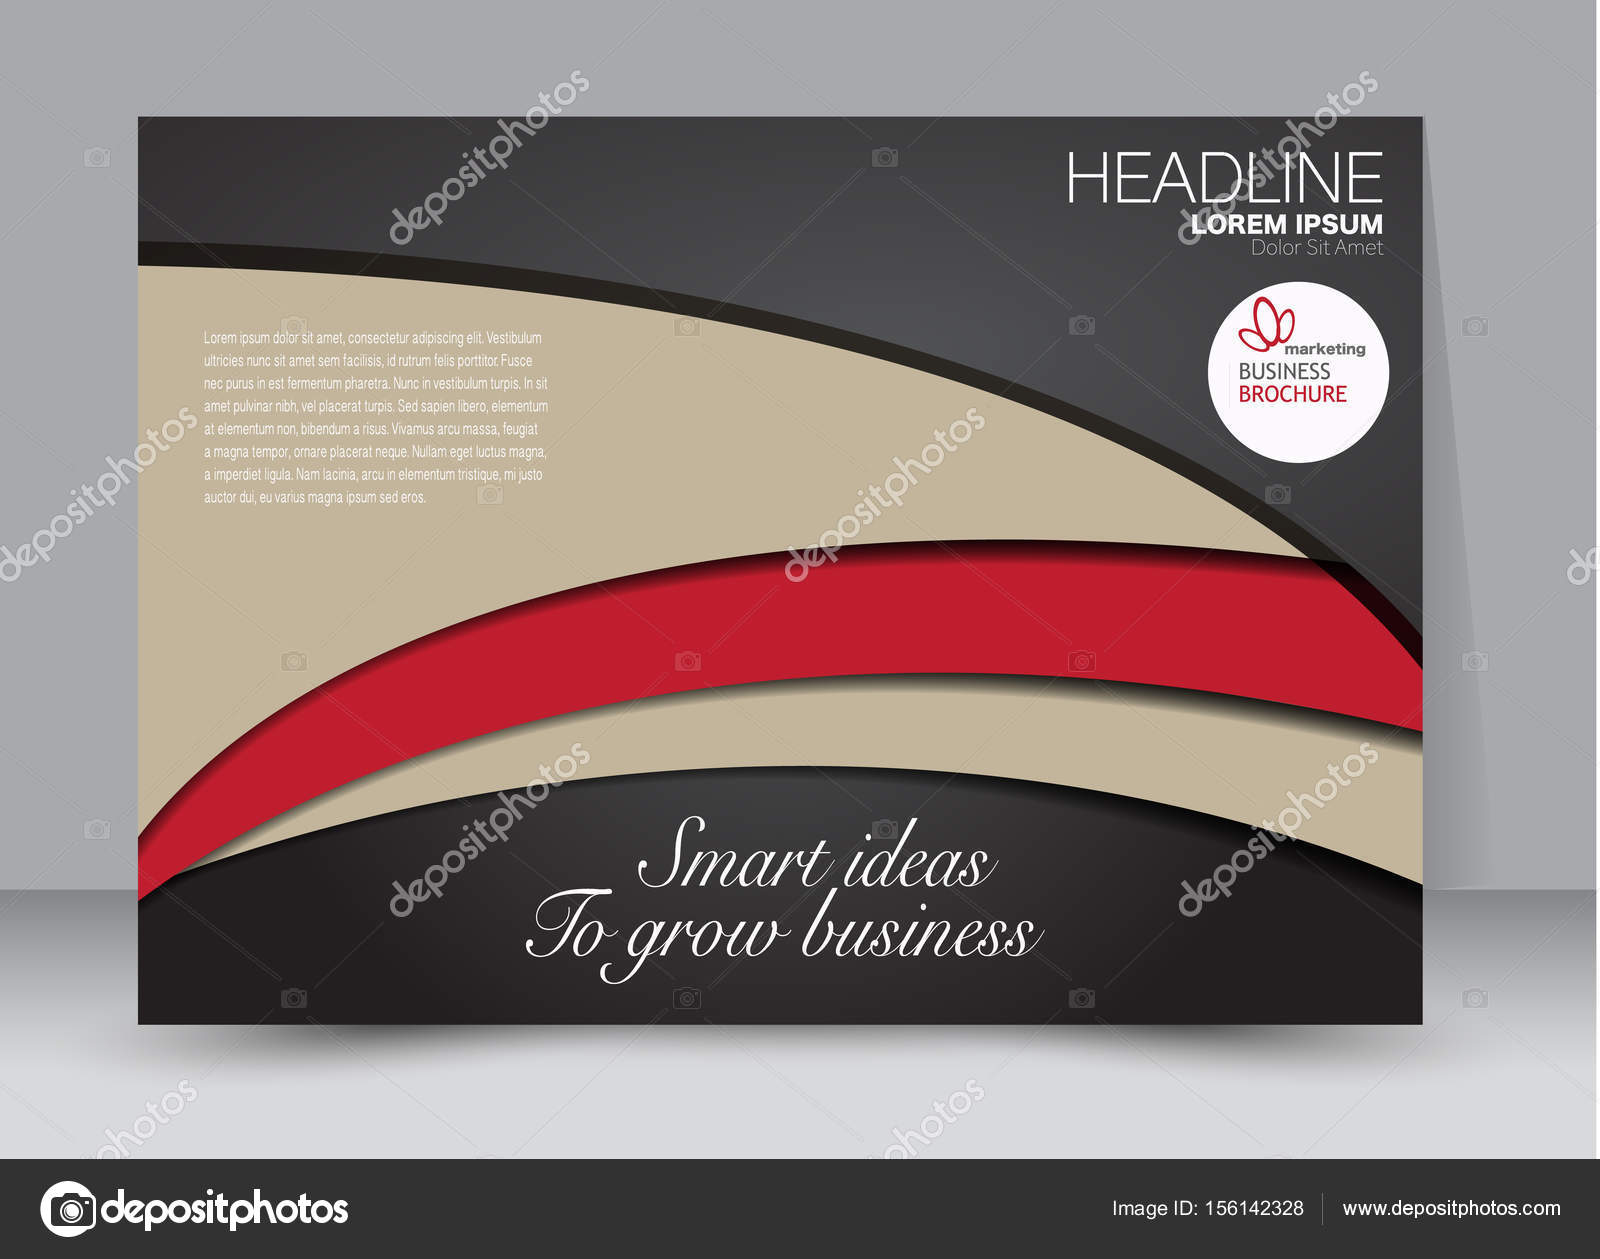 Ziemlich Billboard Modell Vorlage Bilder - Entry Level Resume ...